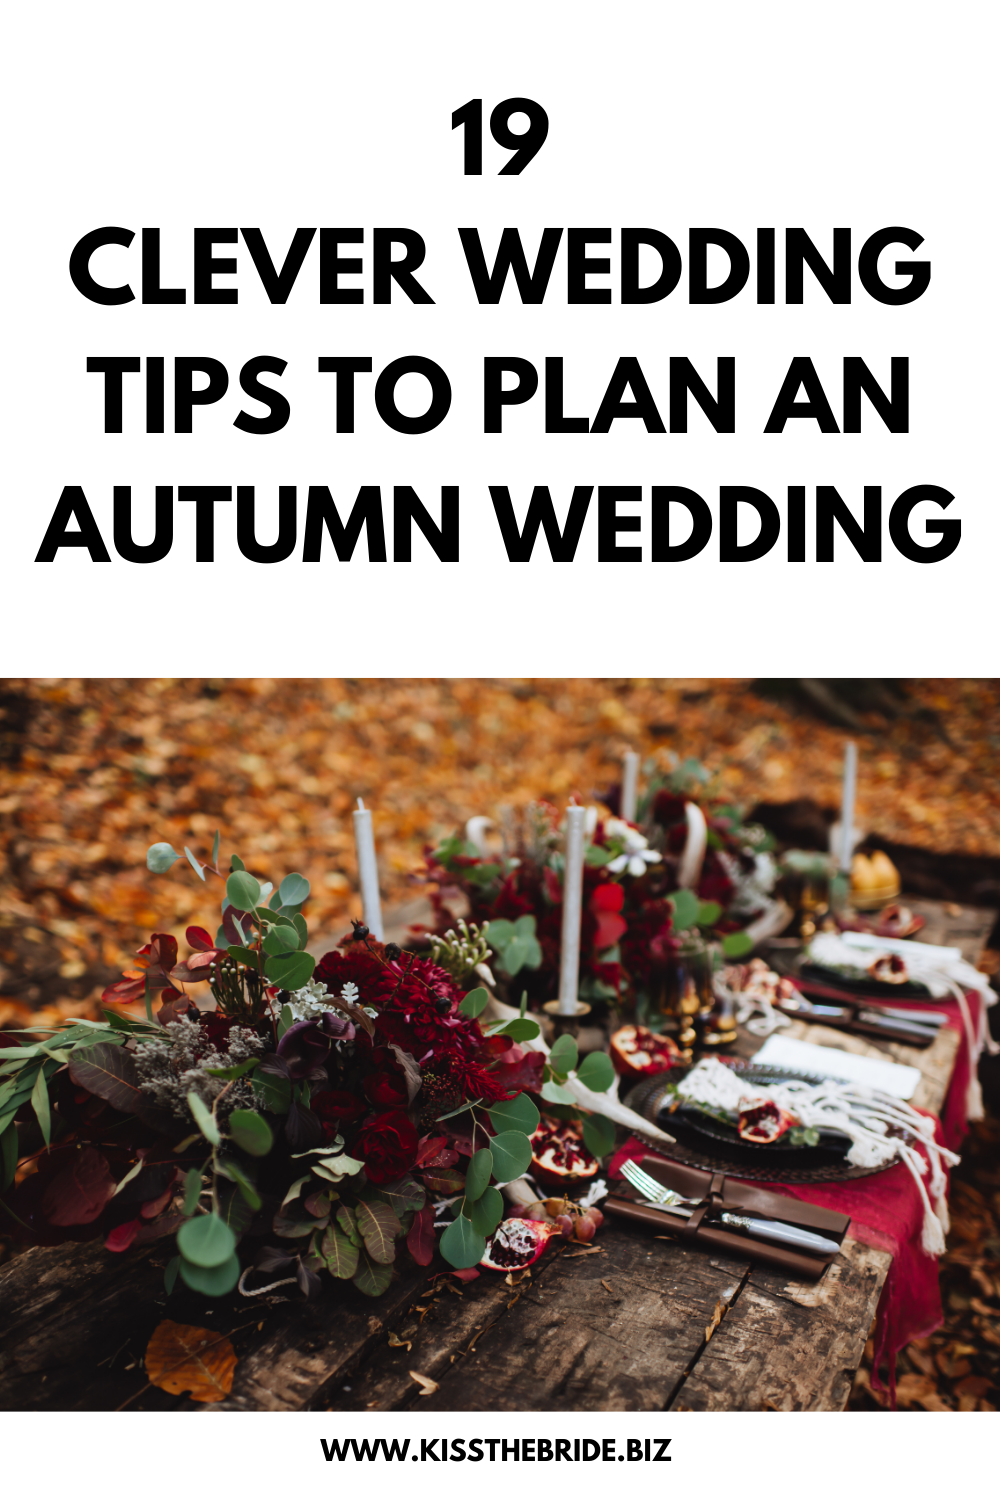 Autumn wedding planning tips and ideas